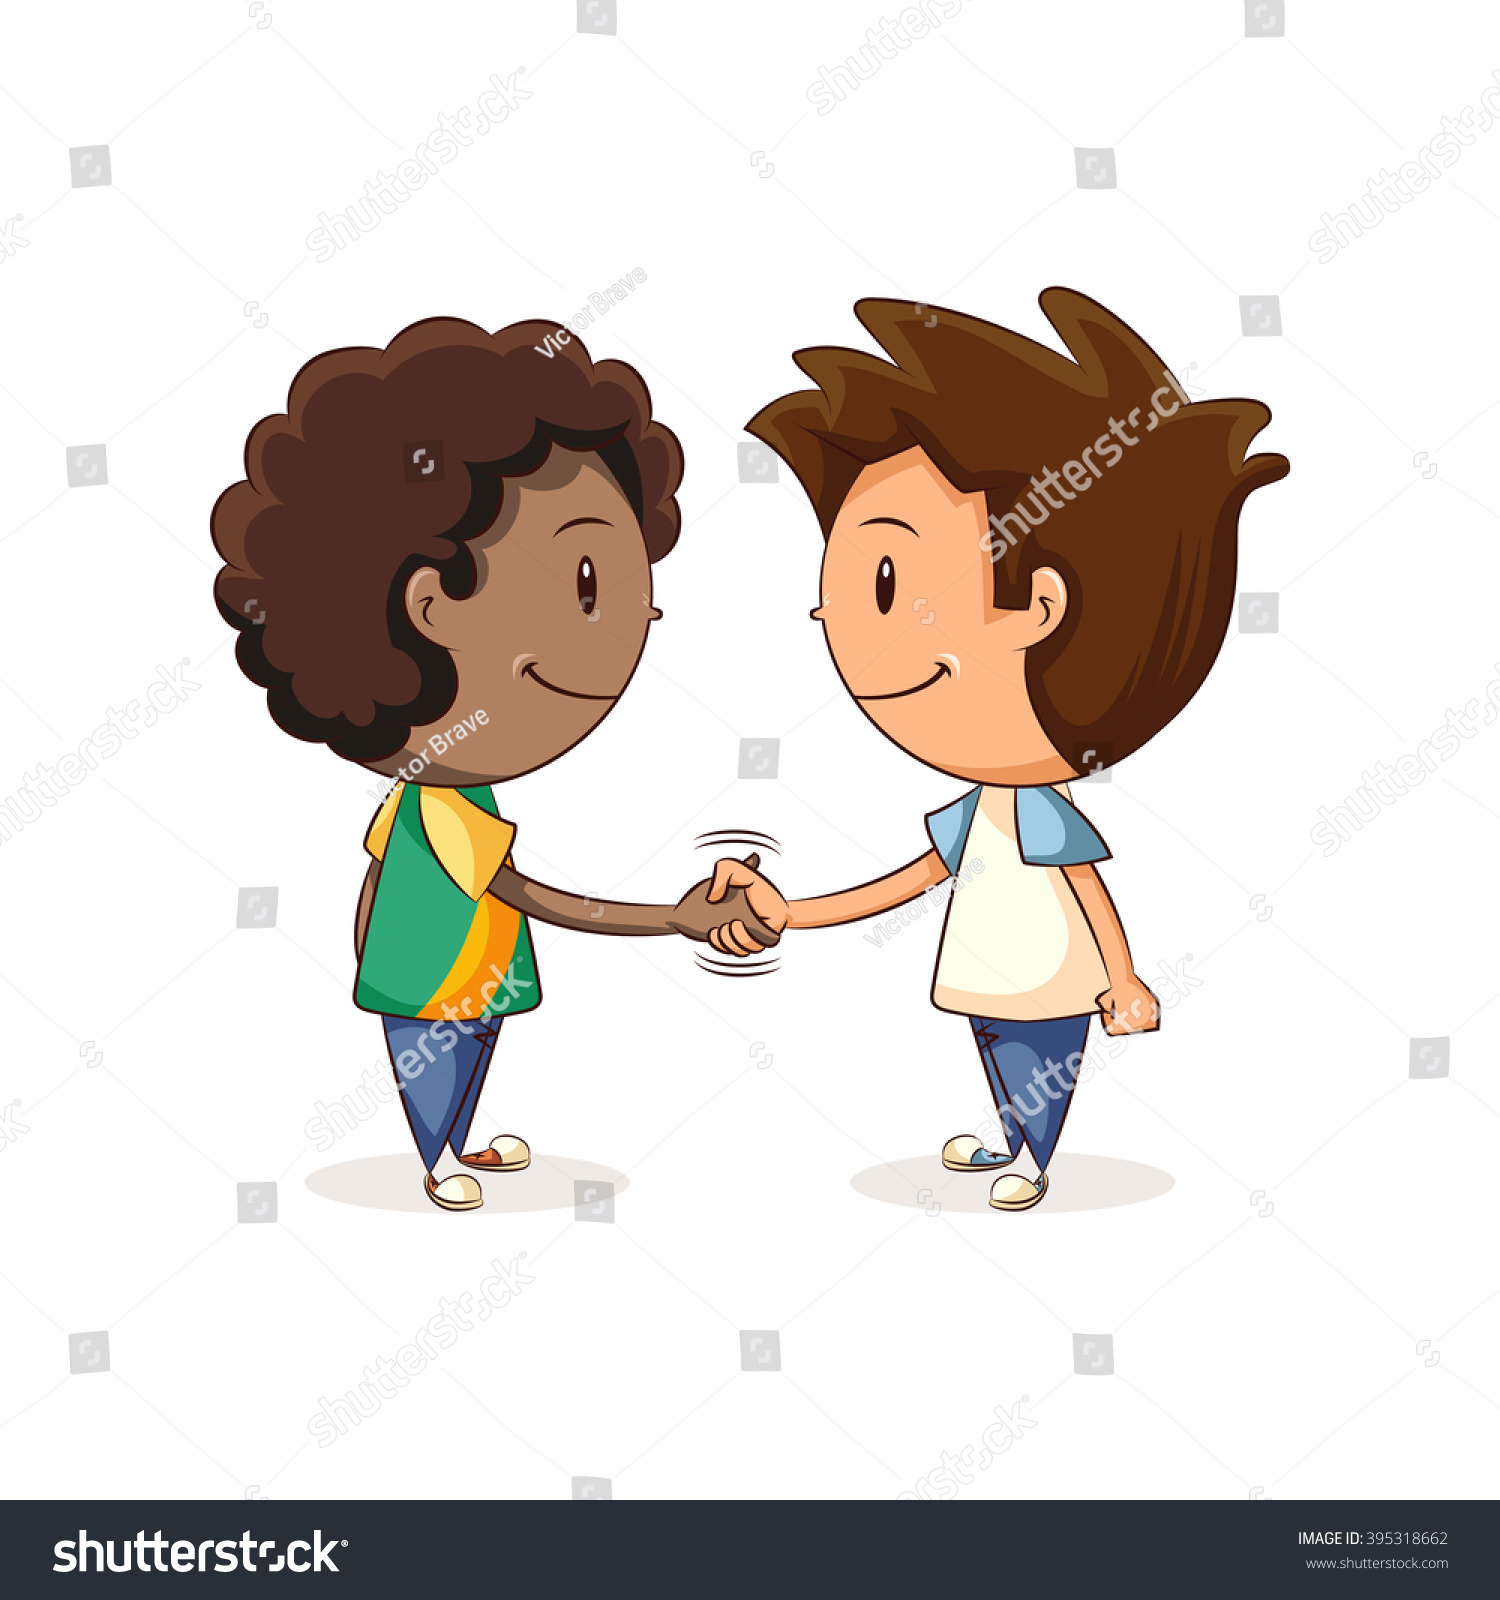 Handshake Children Vector Illustration Stock Vector ...